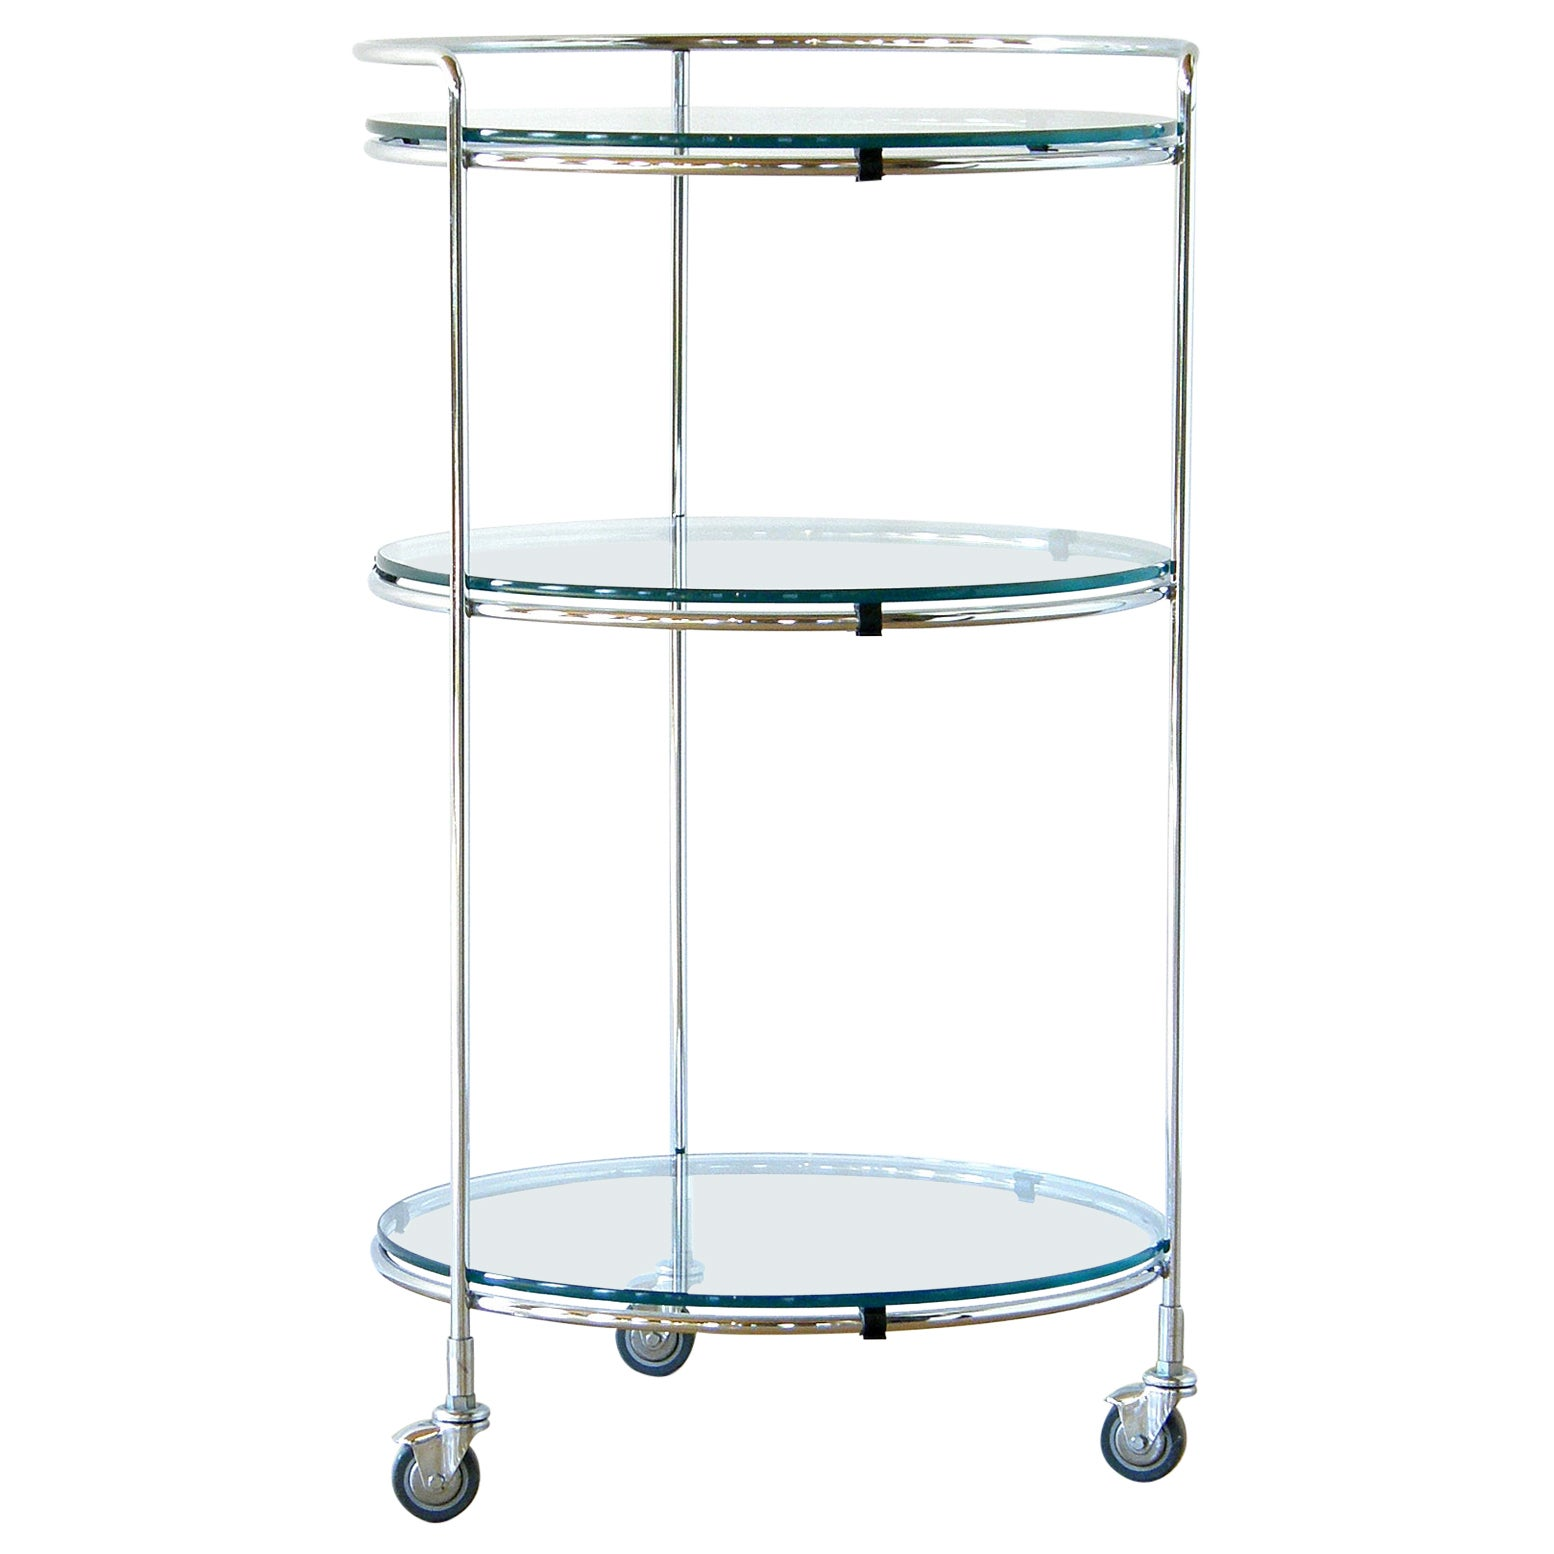 Round Chrome Rolling Cocktail Bar Serving Cart with Glass Shelves